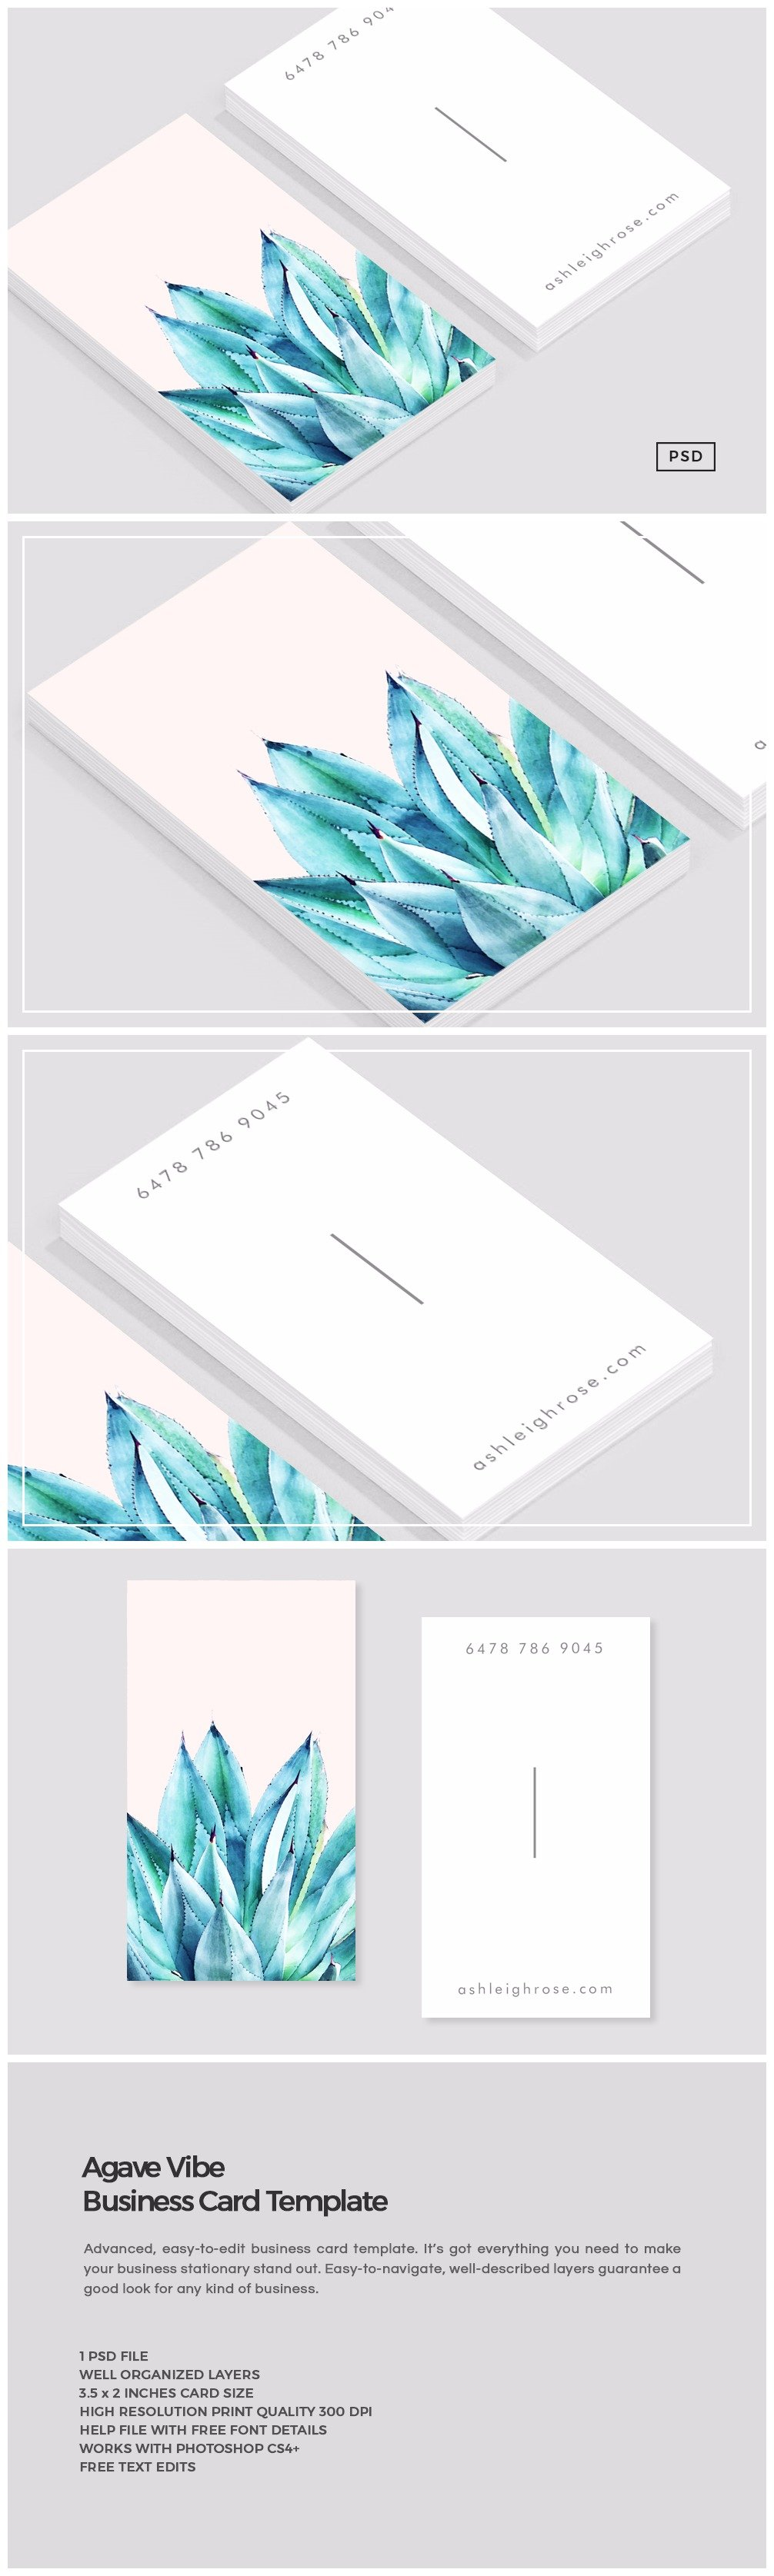 Agave Vibe Business Card Template Business Card Templates - Business card print out template